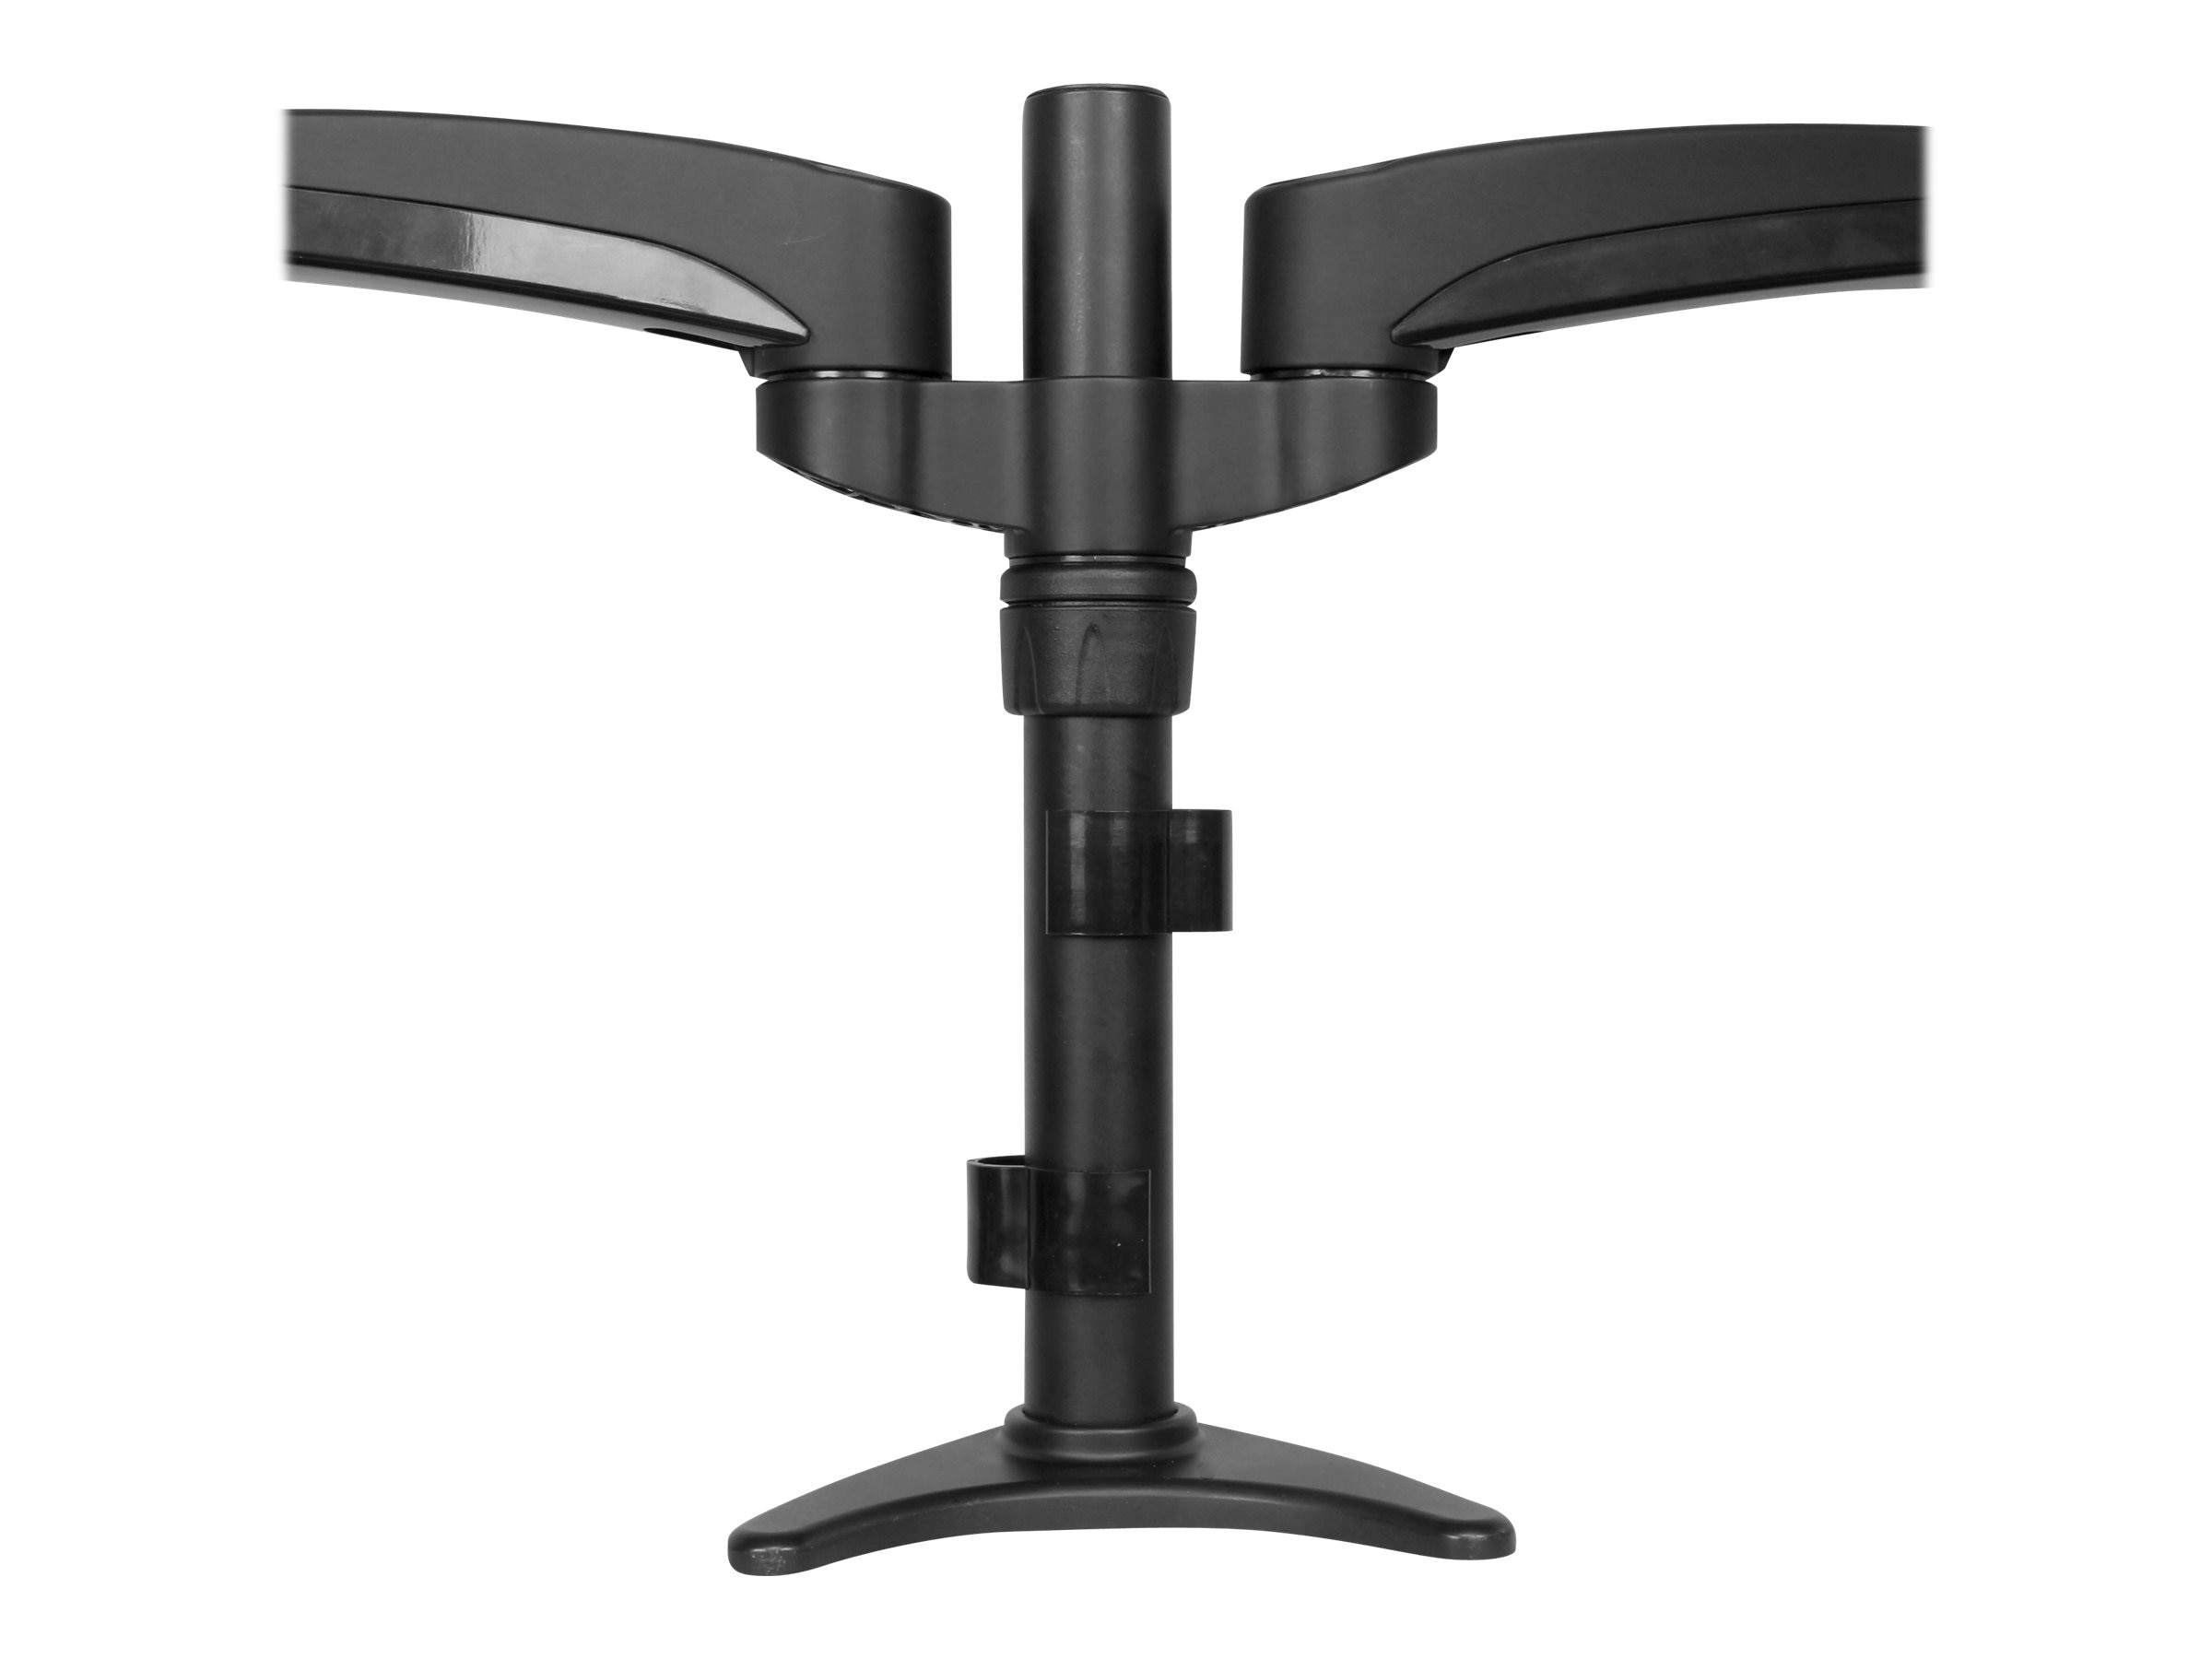 StarTech.com Articulating Dual Monitor Arm and Grommet Desk Mount with Cable Management & Height Adjust, ARMDUAL